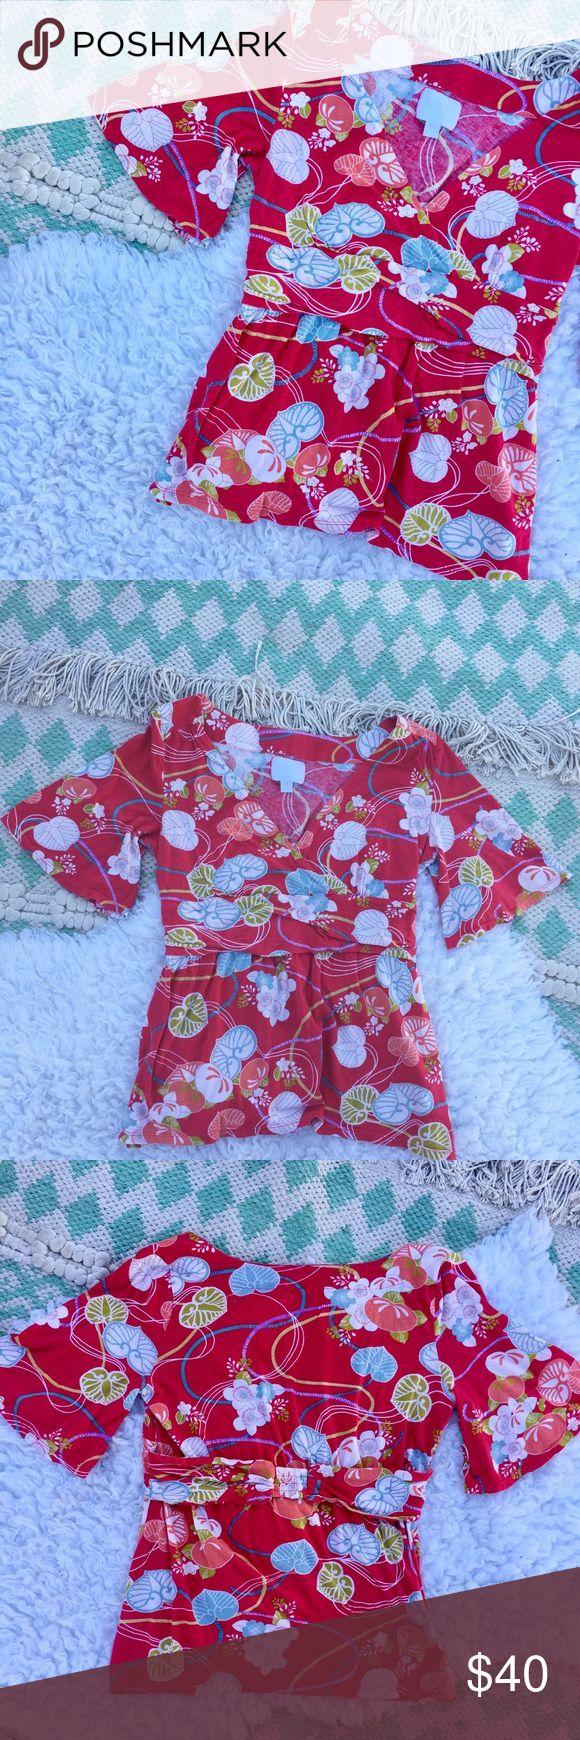 Anthropologie Deletta Wrap Flutter Sleeve Top Red floral faux wrap top with flutter sleeves. stretch band around back. 💫 Smoke free home. Offers are welcome! No trades, please. Bundle multiple items for a discount and only pay for shipping once! Anthropologie Tops